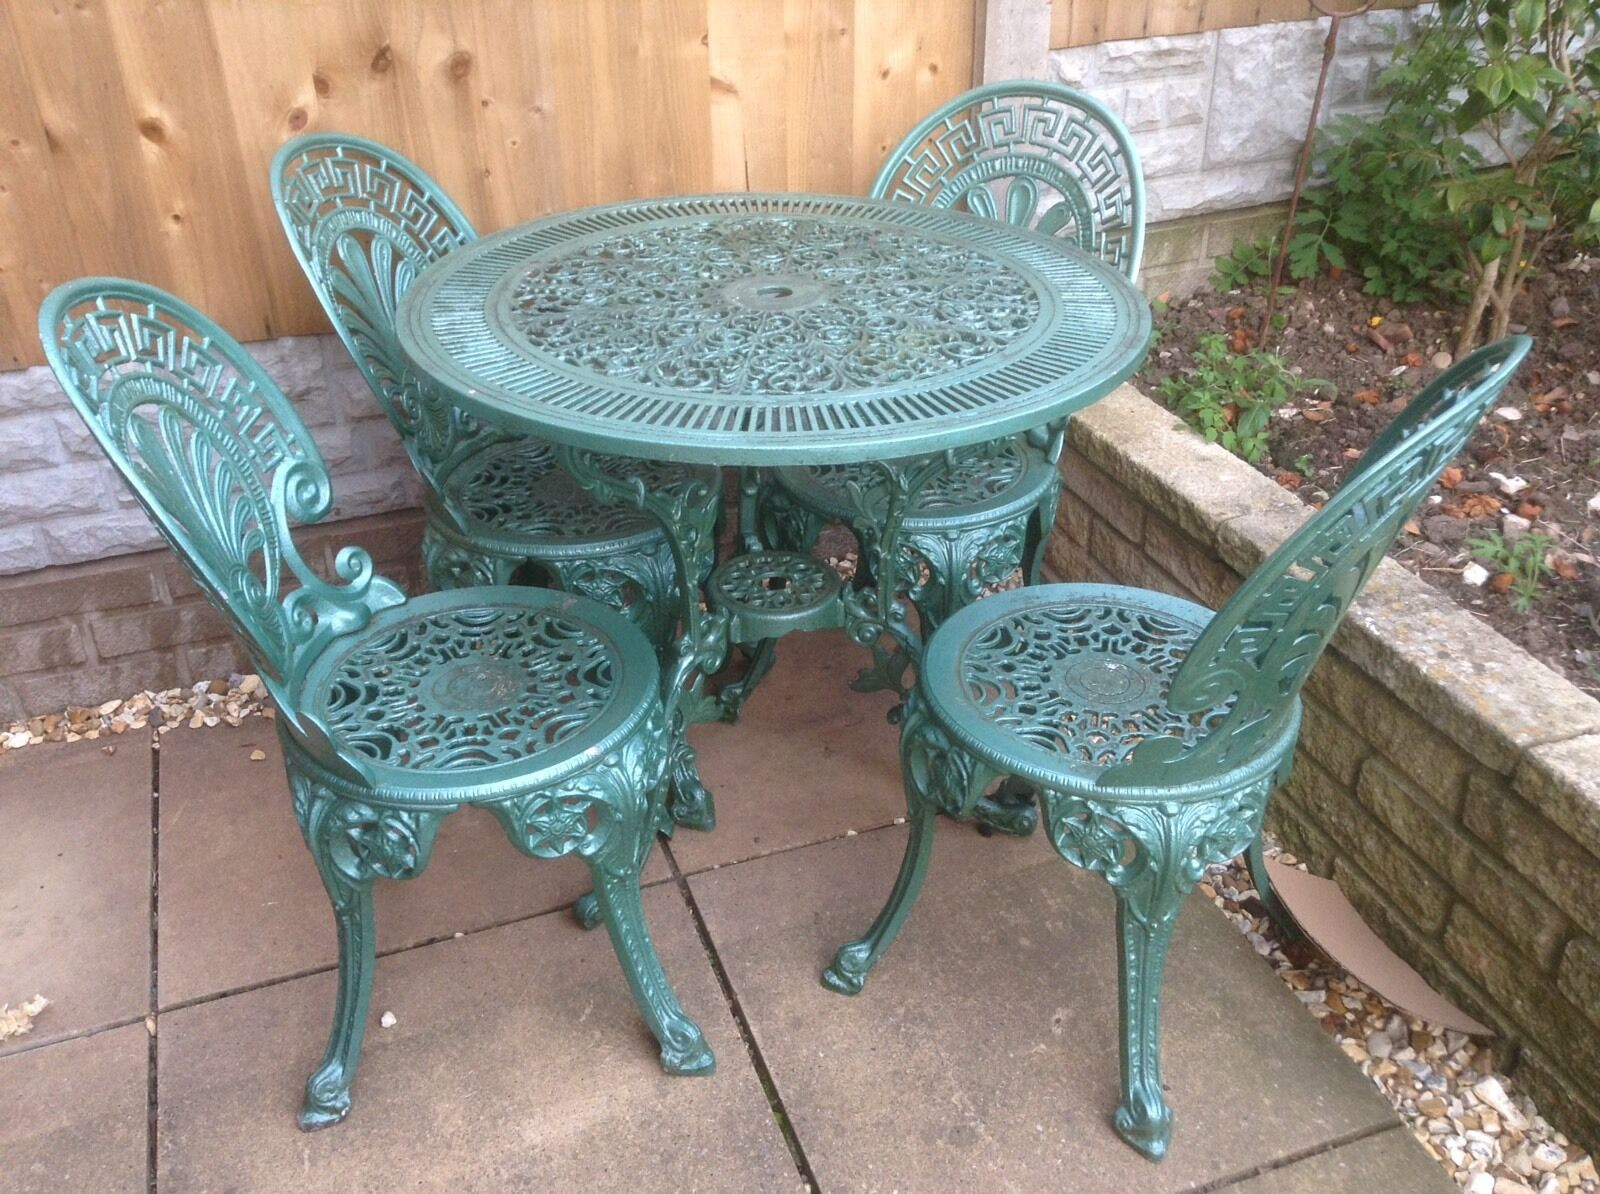 Vintage cast iron garden furniture table and chairs Cast iron garden furniture